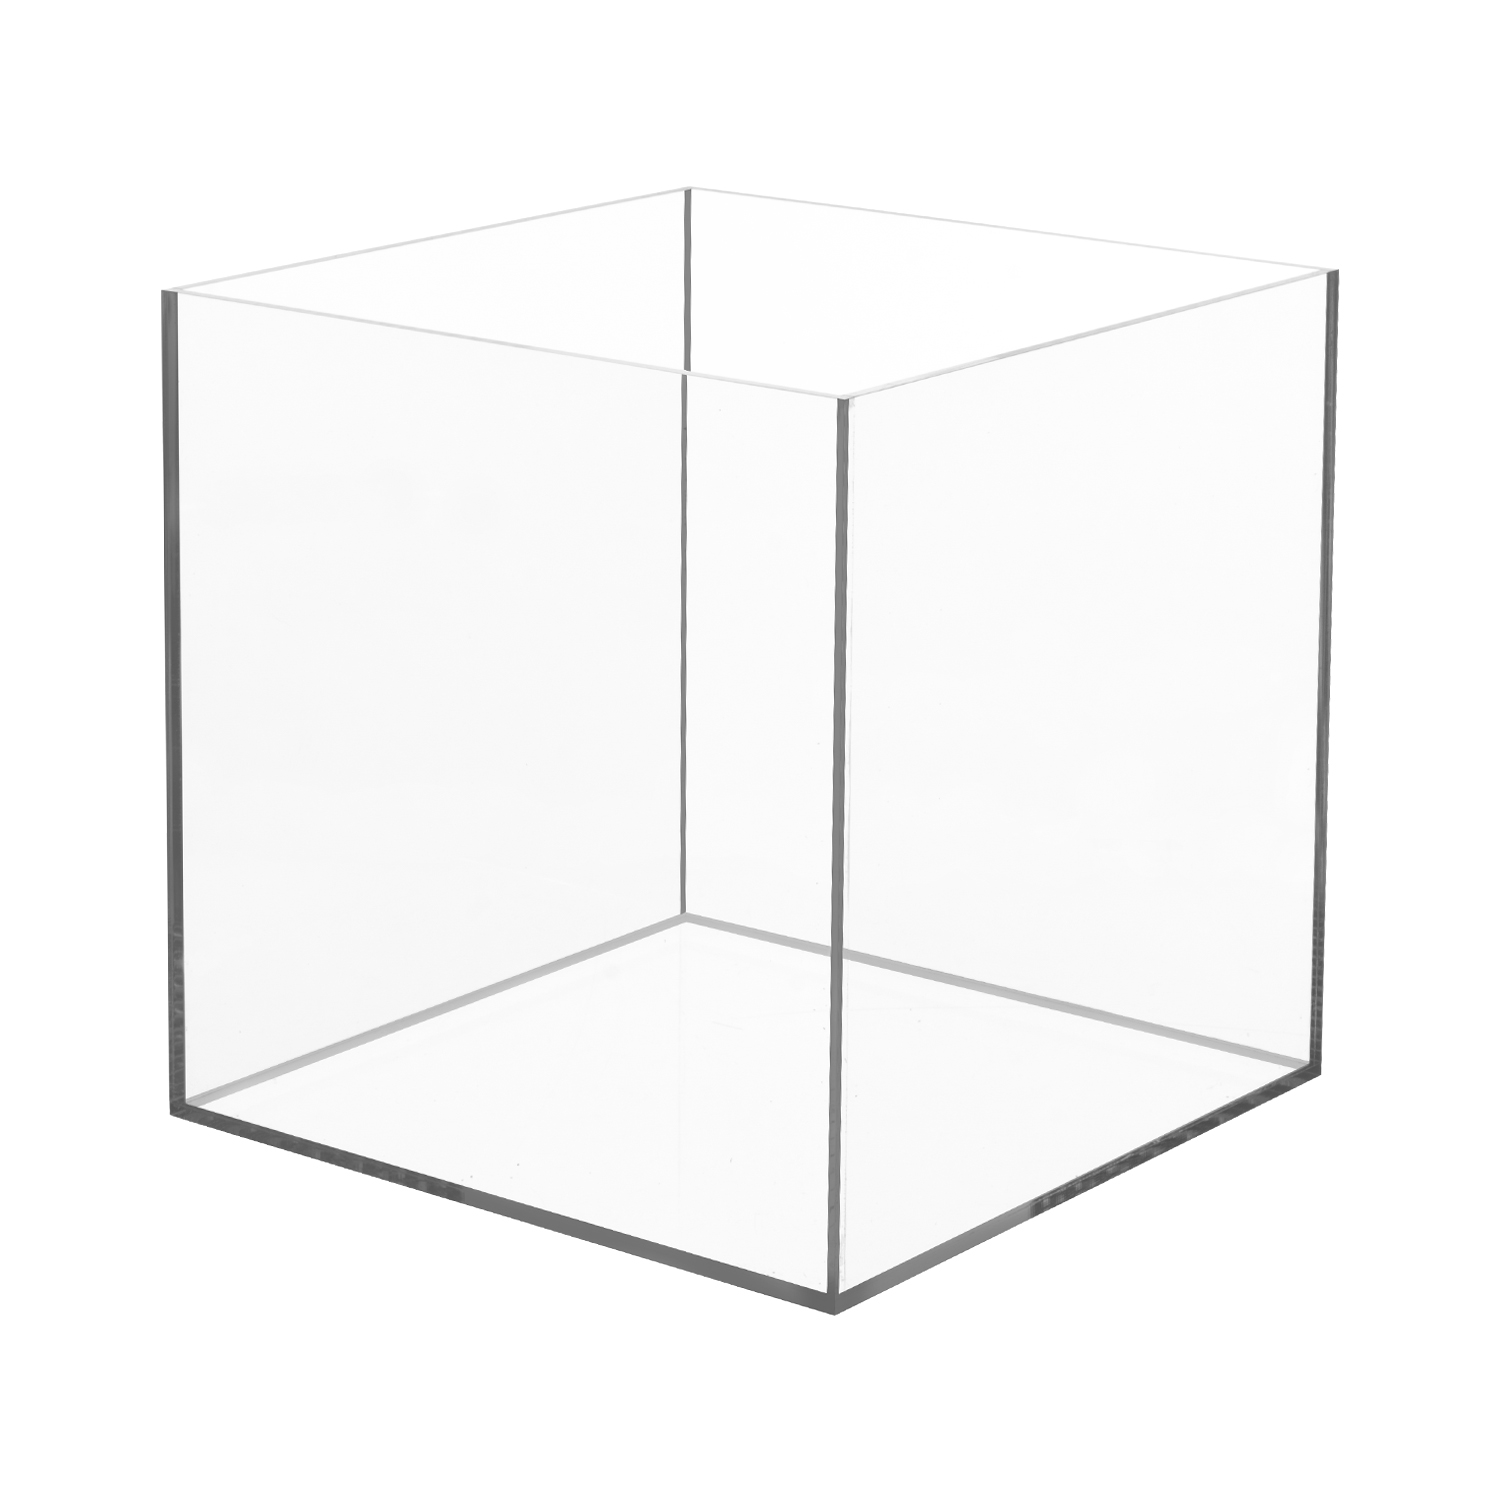 Acrylic 5 Sided Box 16 Quot X 16 Quot X 16 Quot Buy Acrylic